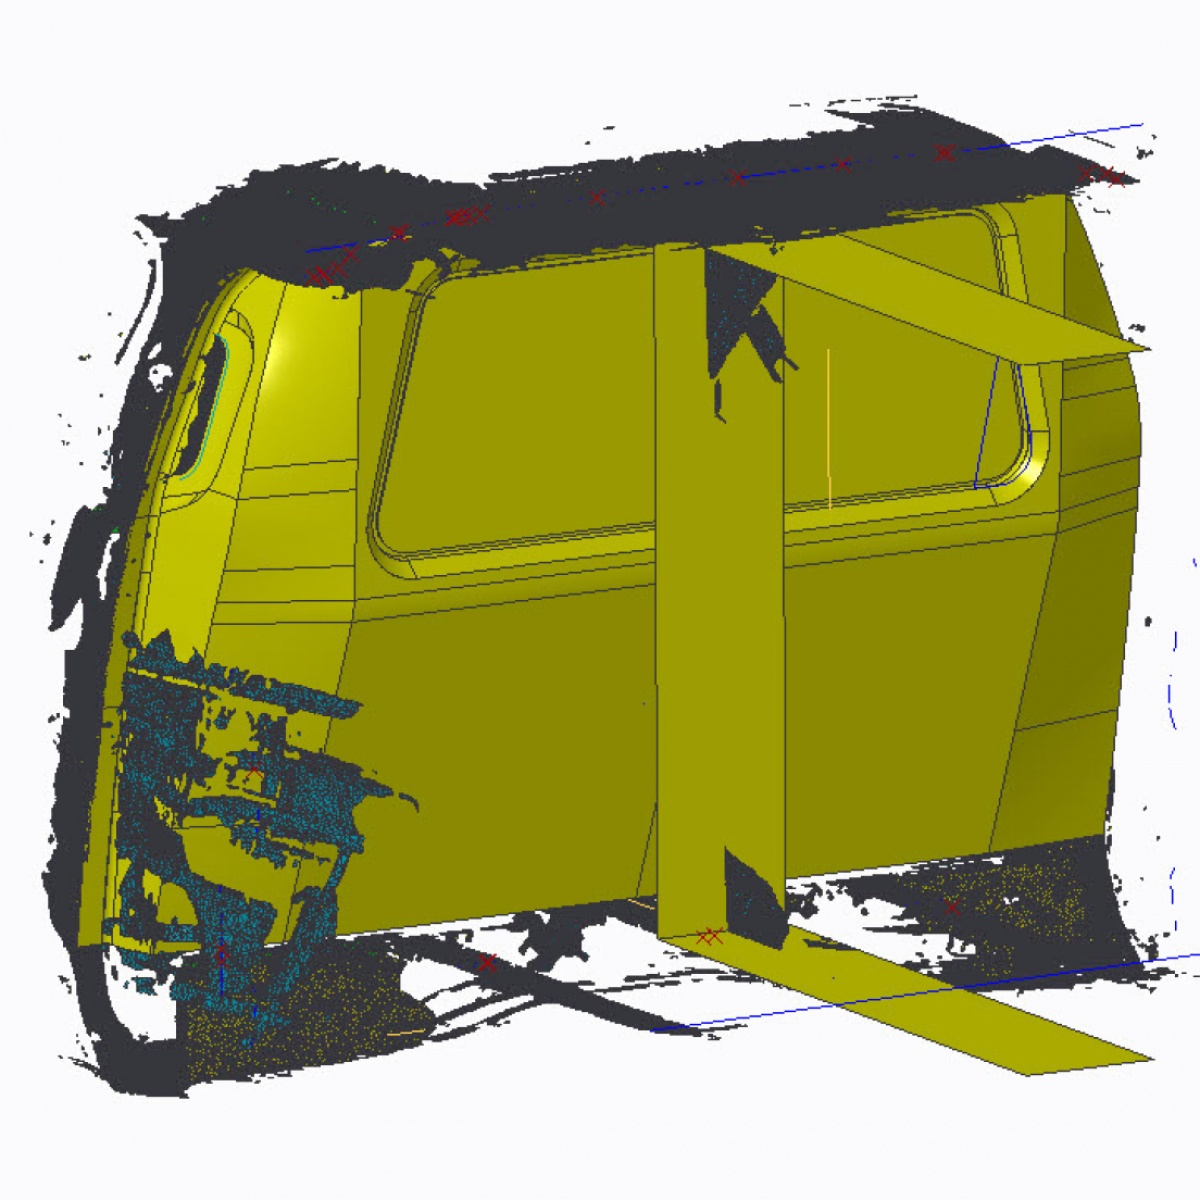 Hegge Id Product Design Profiglass Land Rover Discovery 5 Hegge Id